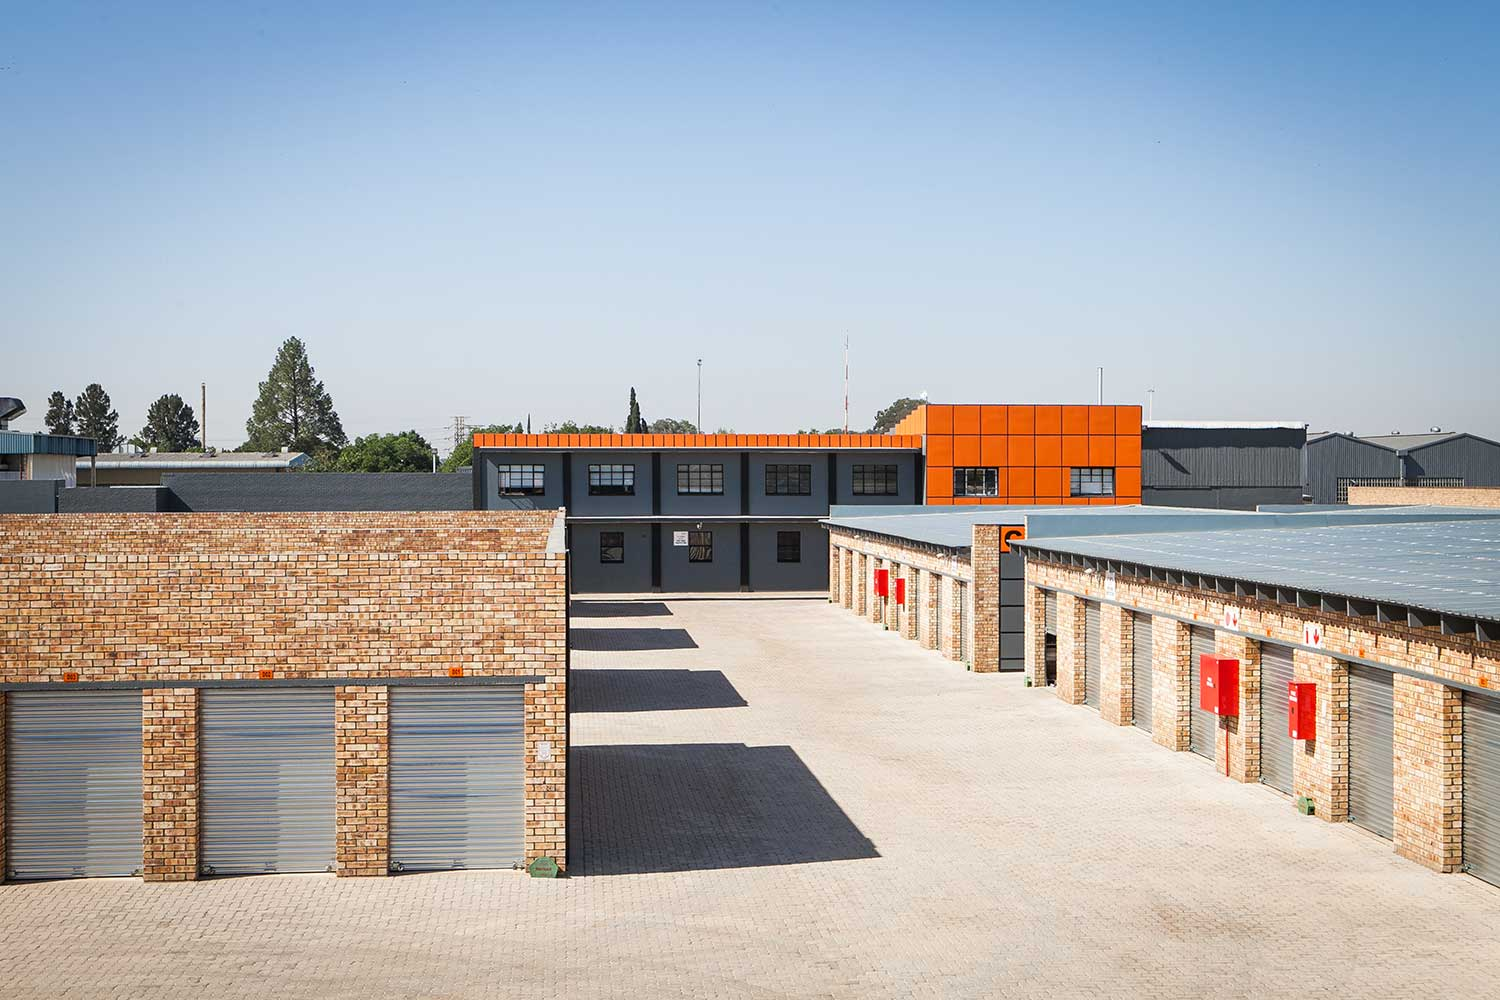 The XtraSpace Vereeniging self storage faciltity